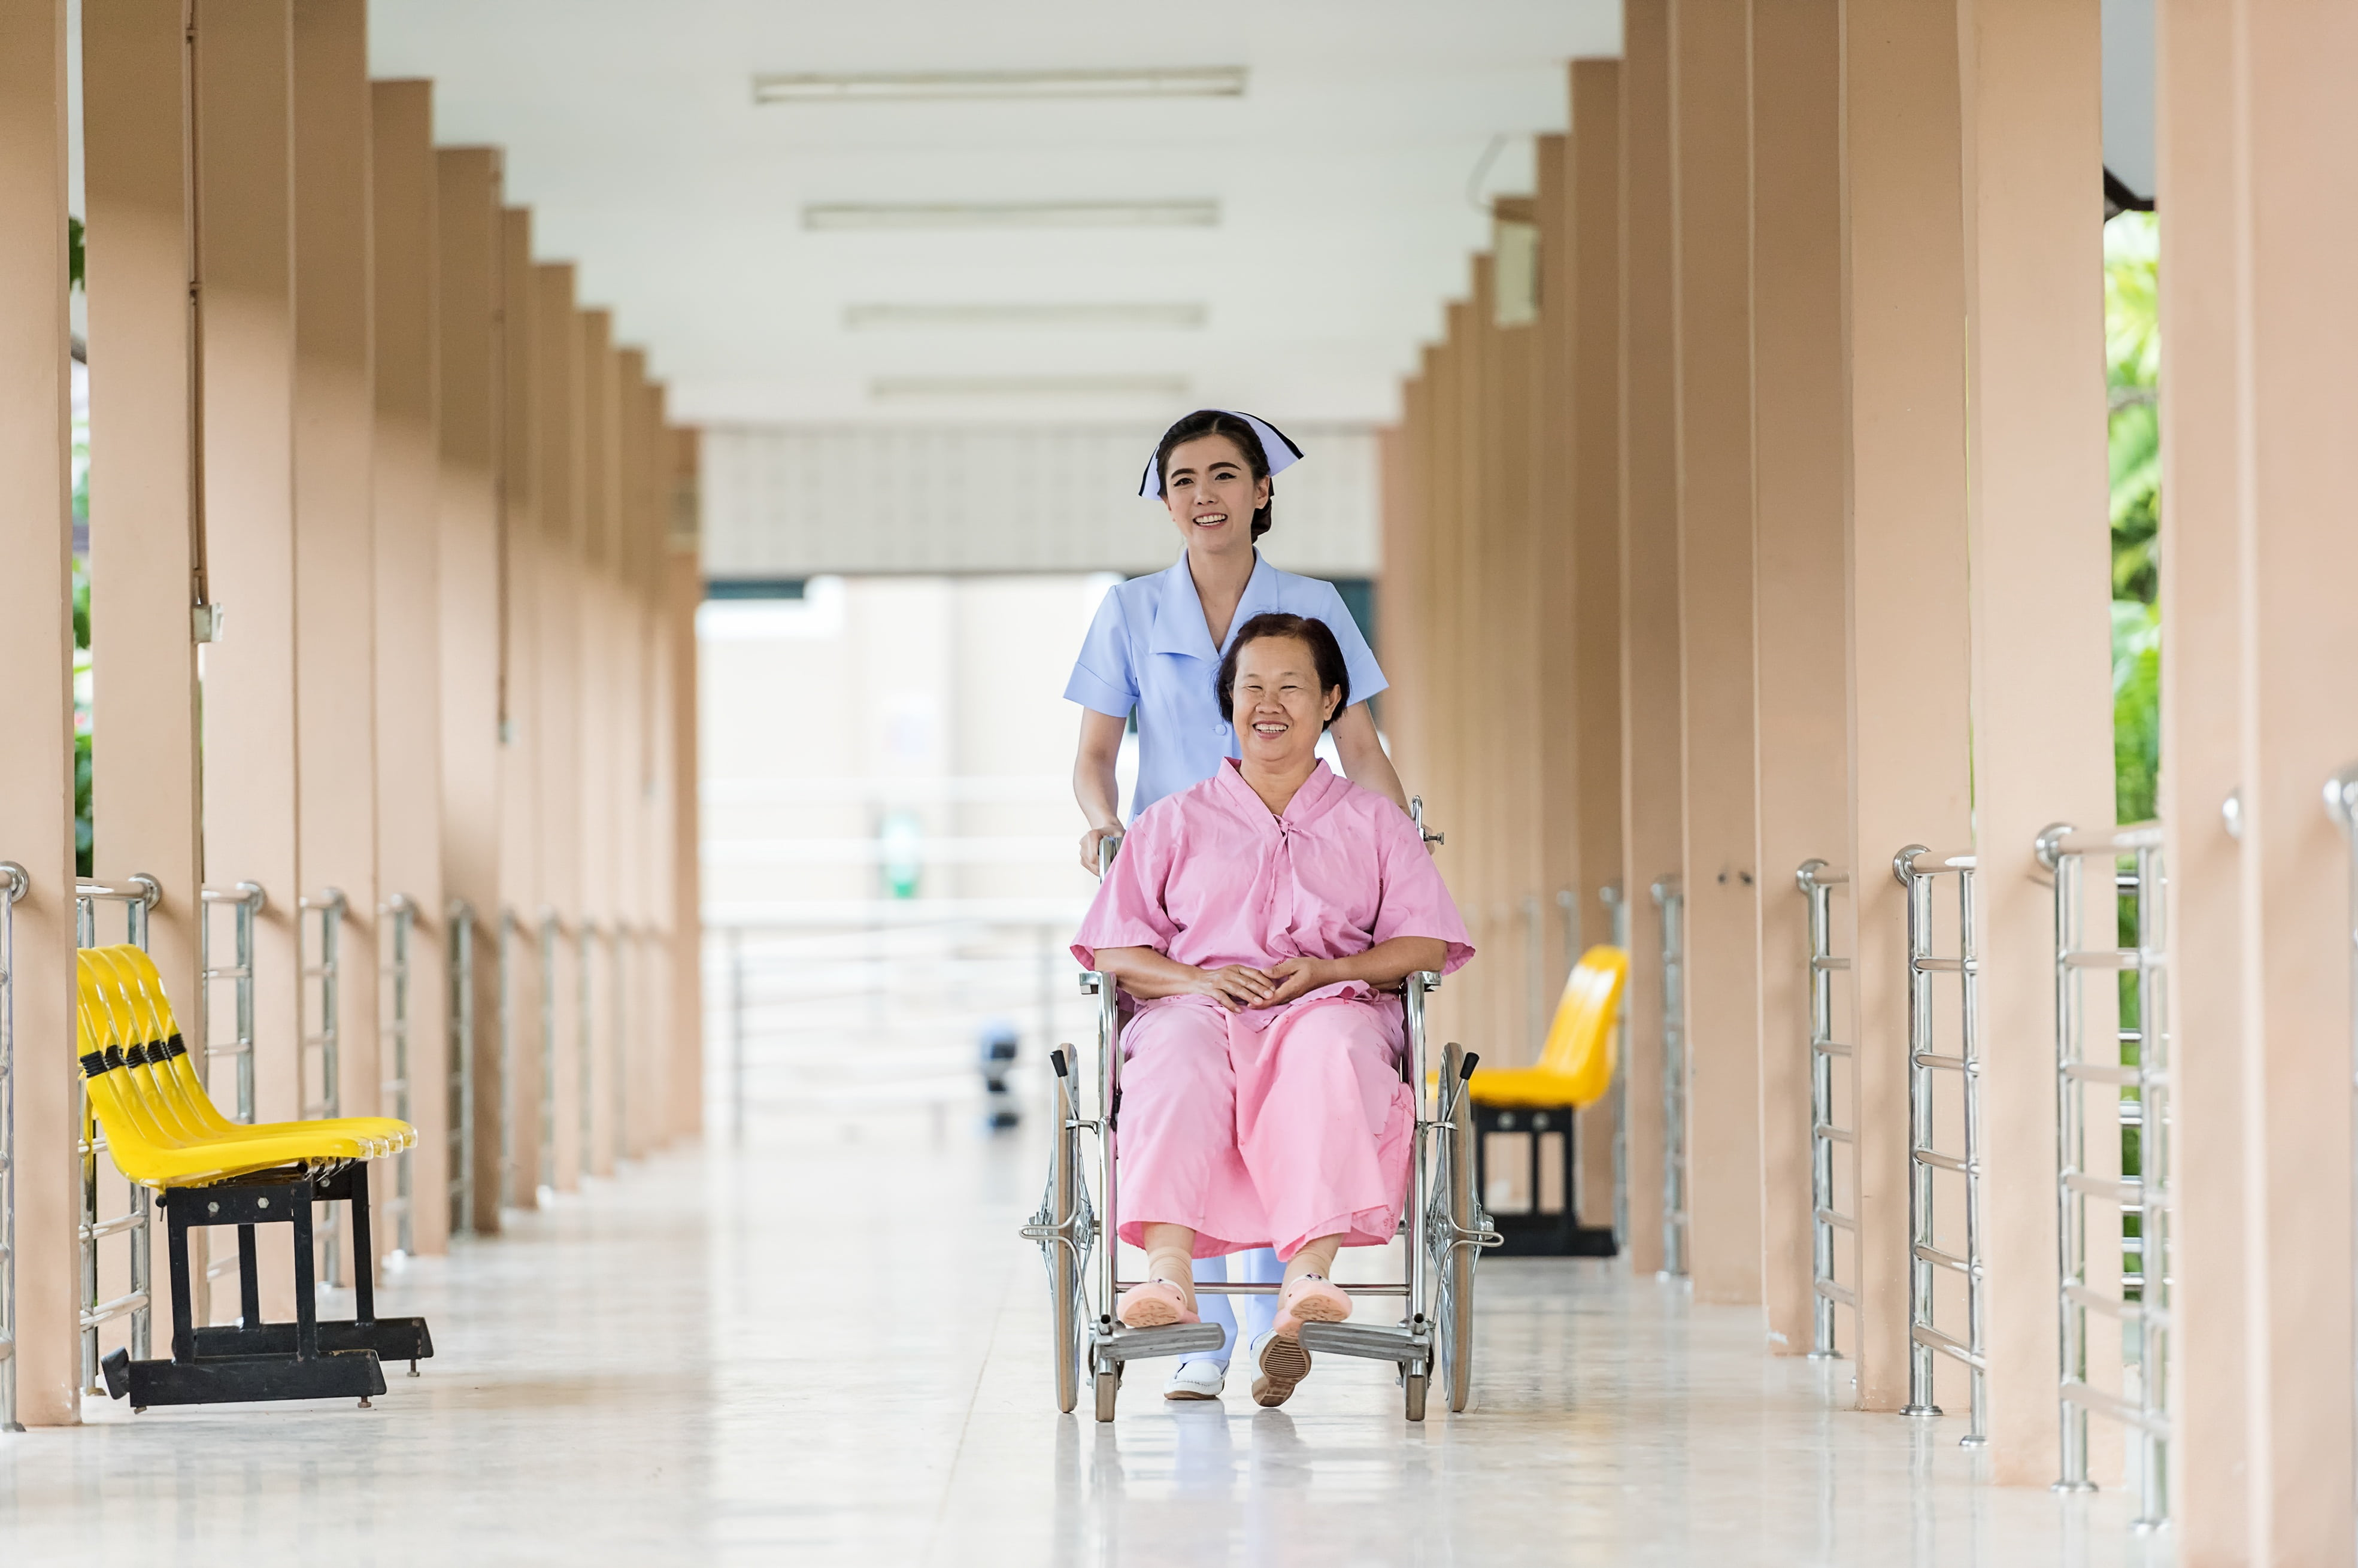 A nurse assists a woman in a wheelchair